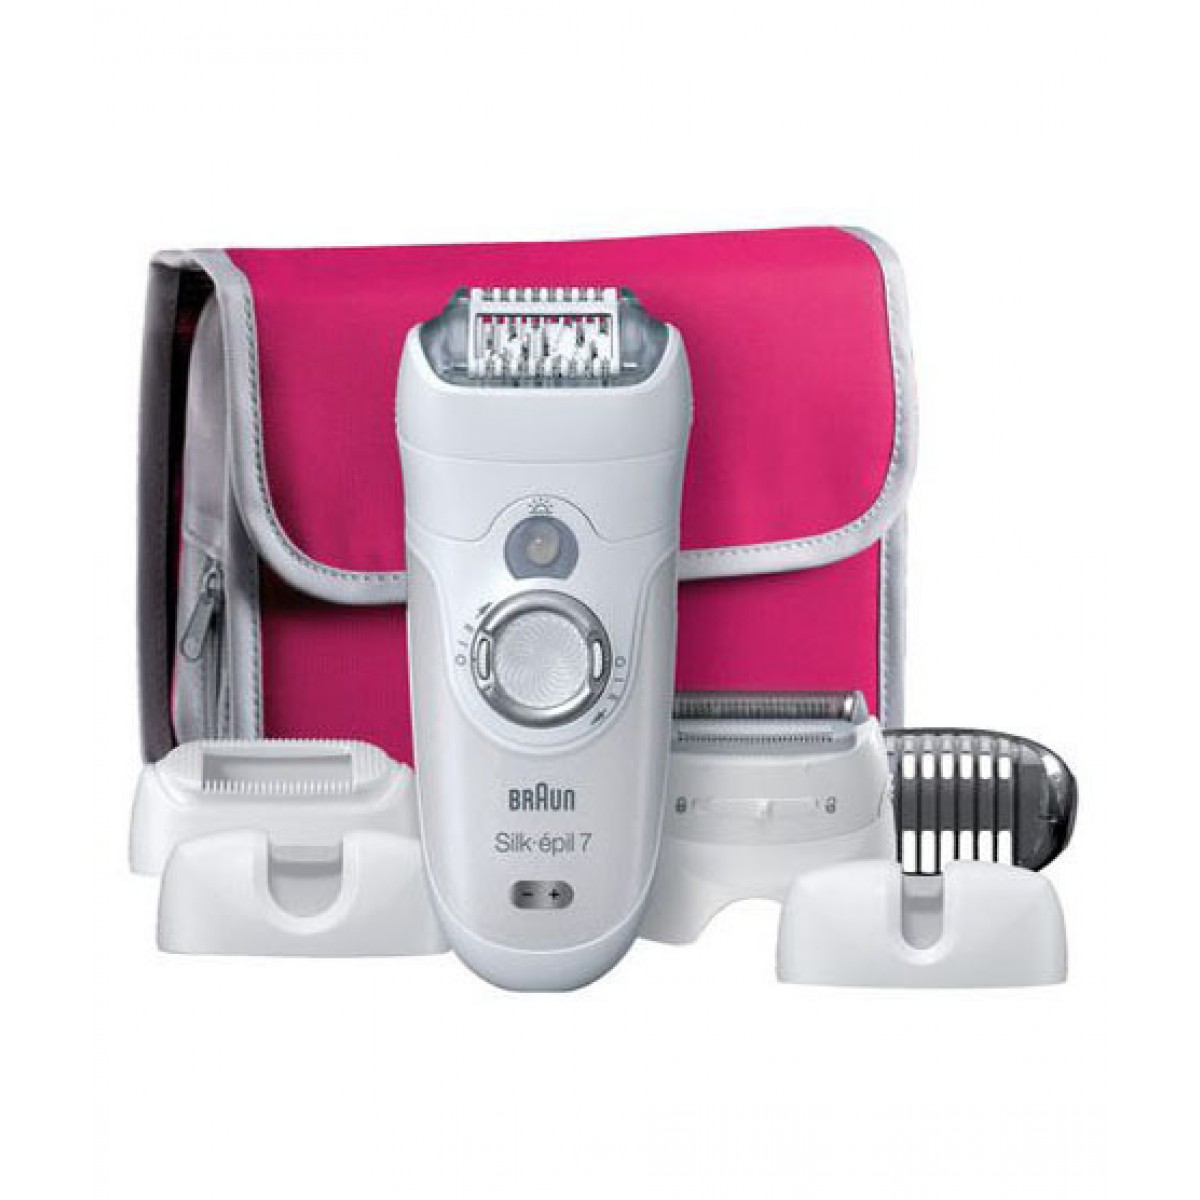 Braun Silk Epil 7 Epilator 7 561 Price In Pakistan Buy Braun